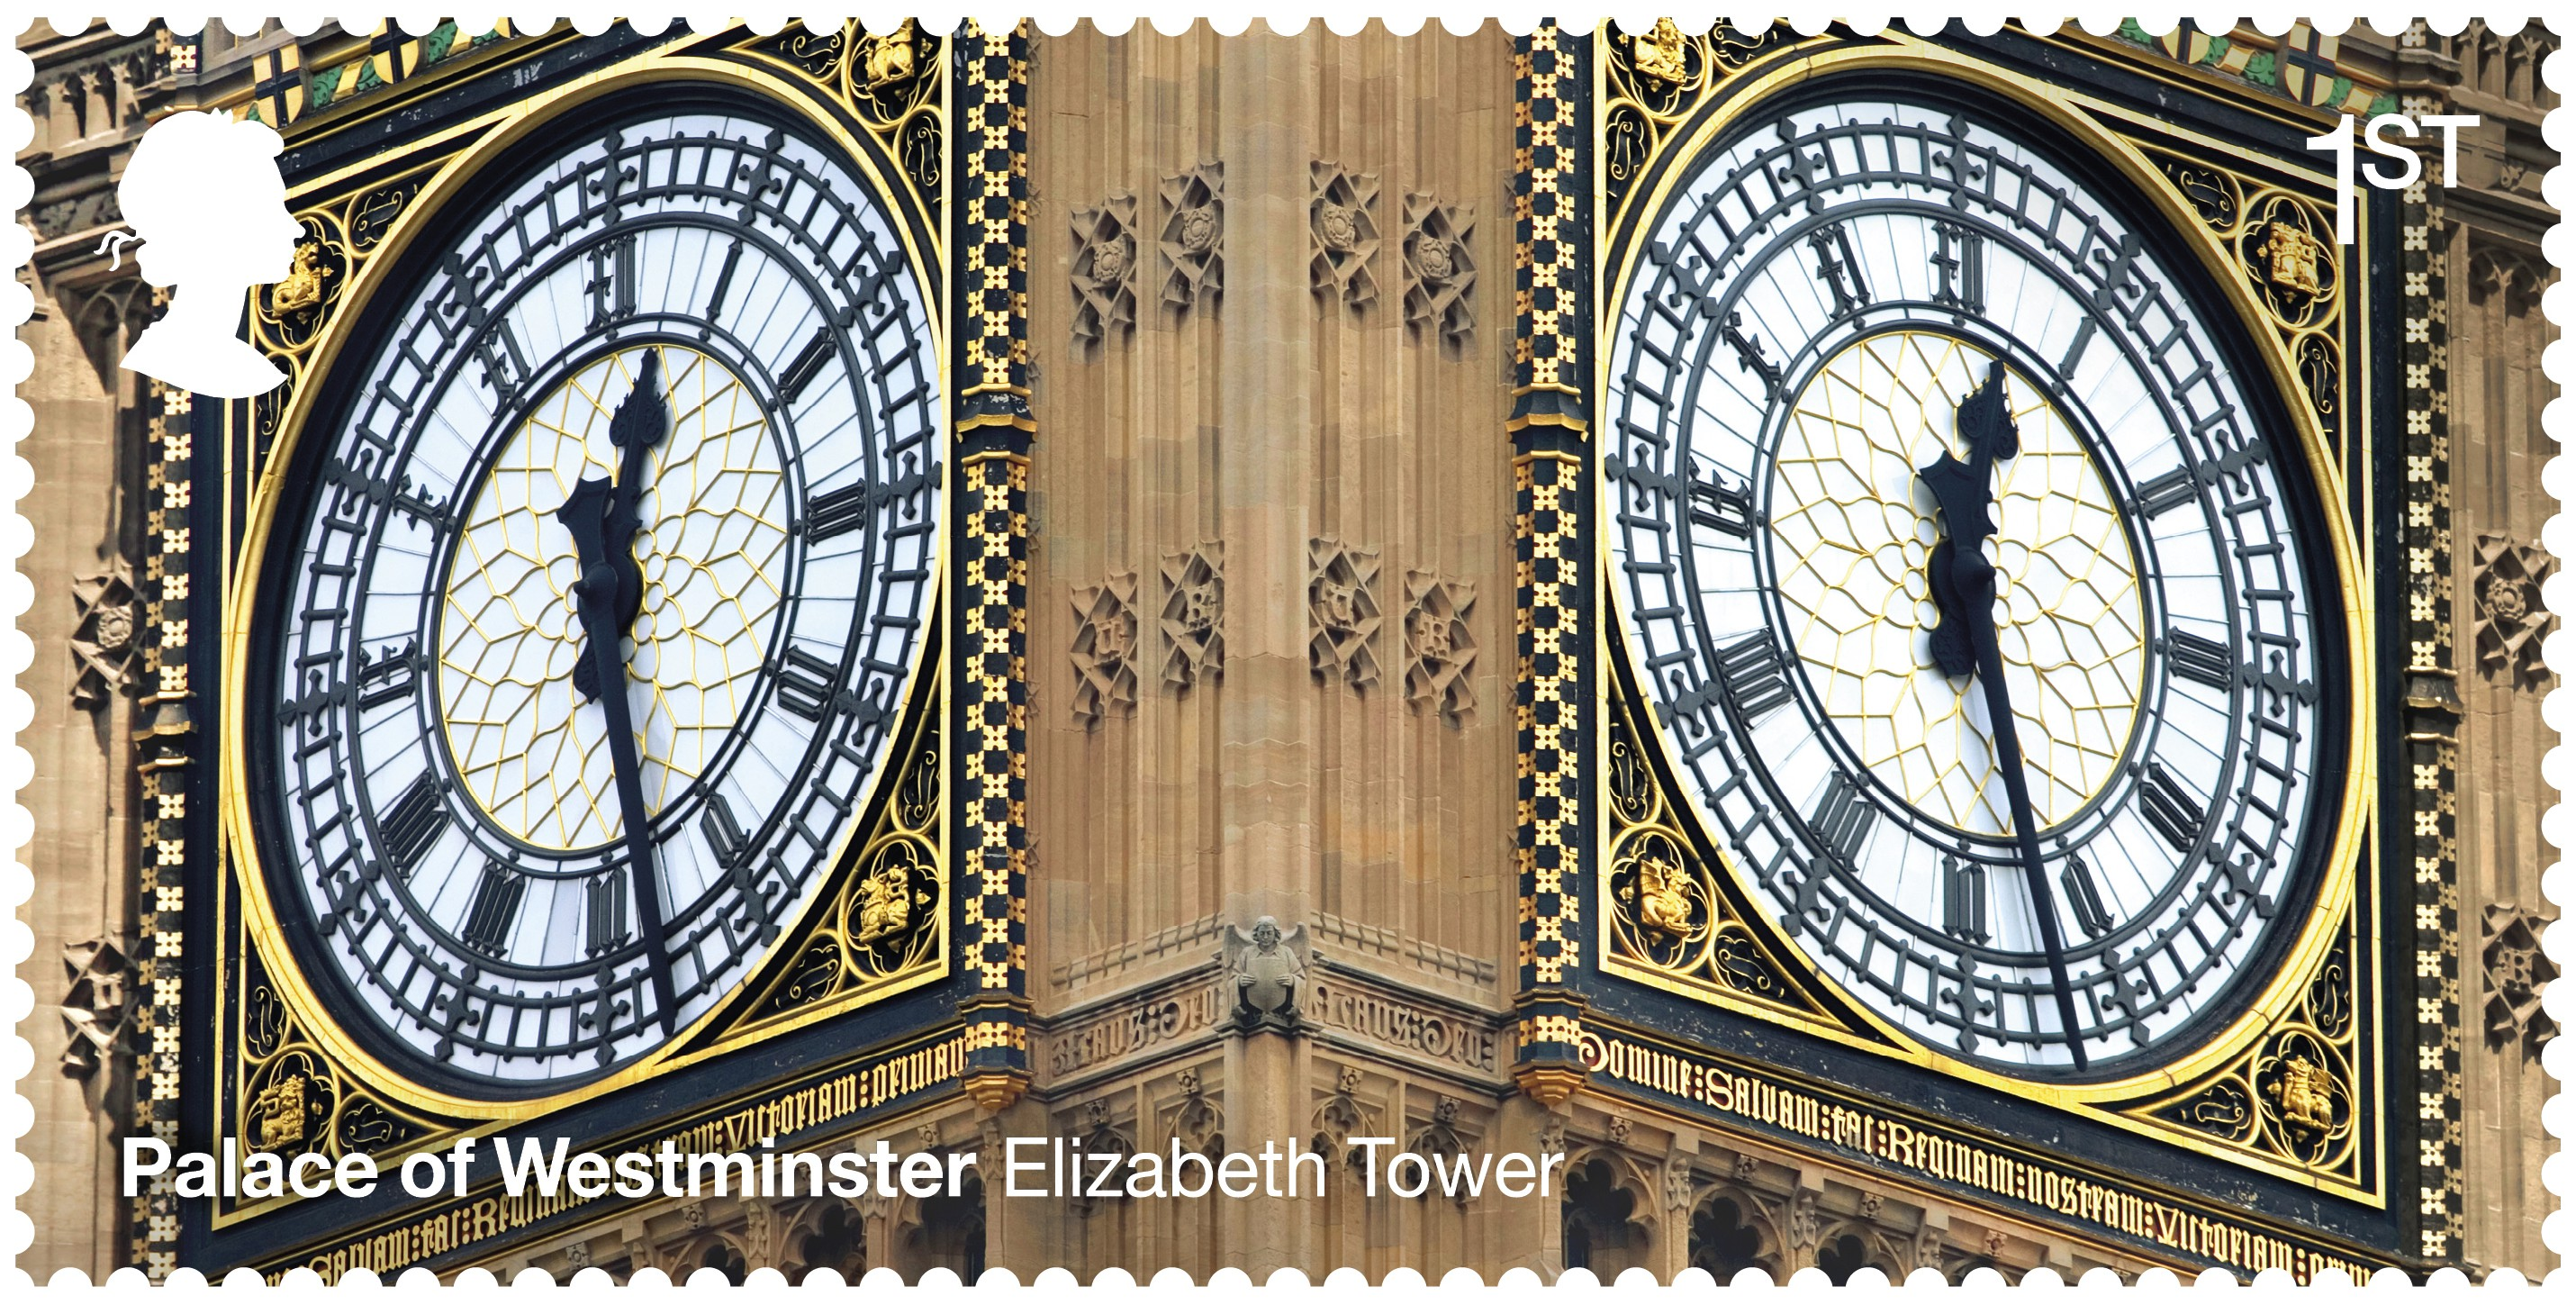 The stamps have been released to celebrate 150 years since the Palace of Westminster was rebuilt